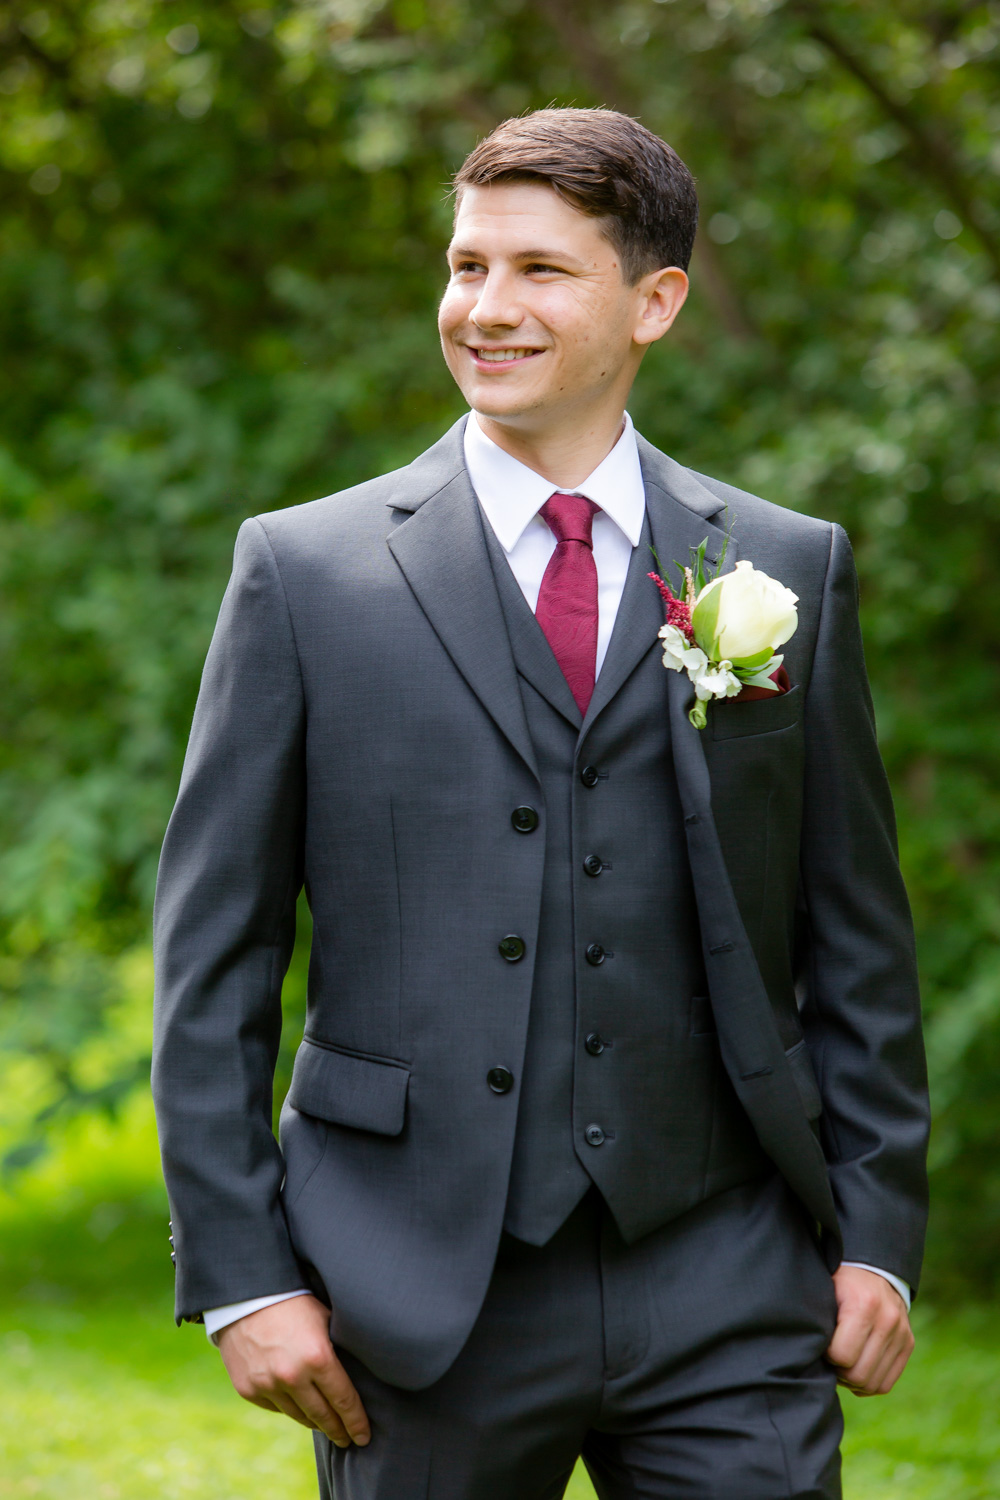 Finger-Lakes-Wedding-Photographer-Joe-Hy-Owego-NY-7140.jpg